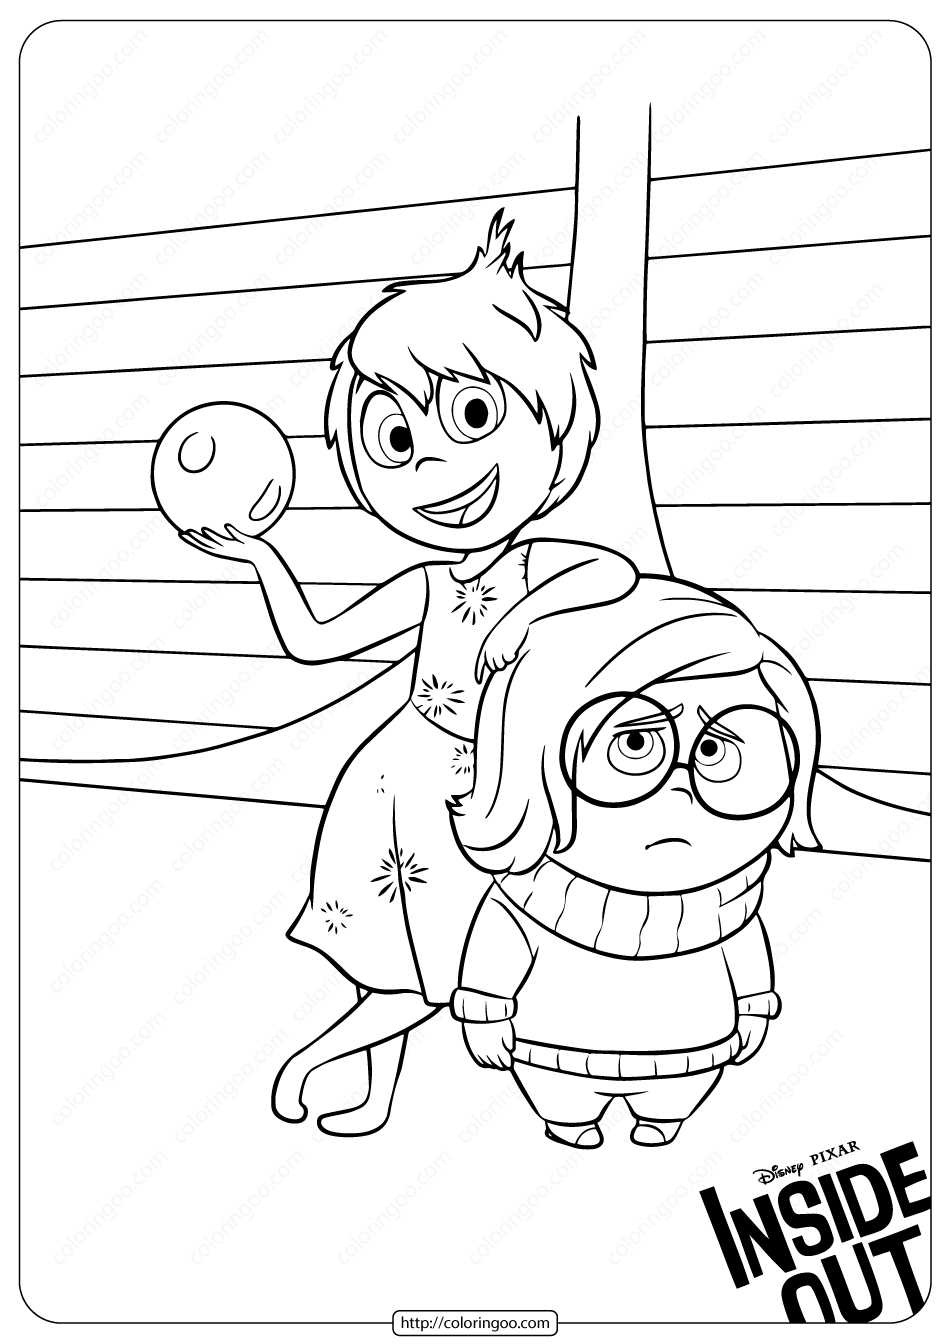 Printable Inside Out Joy and Sadness Coloring Pages